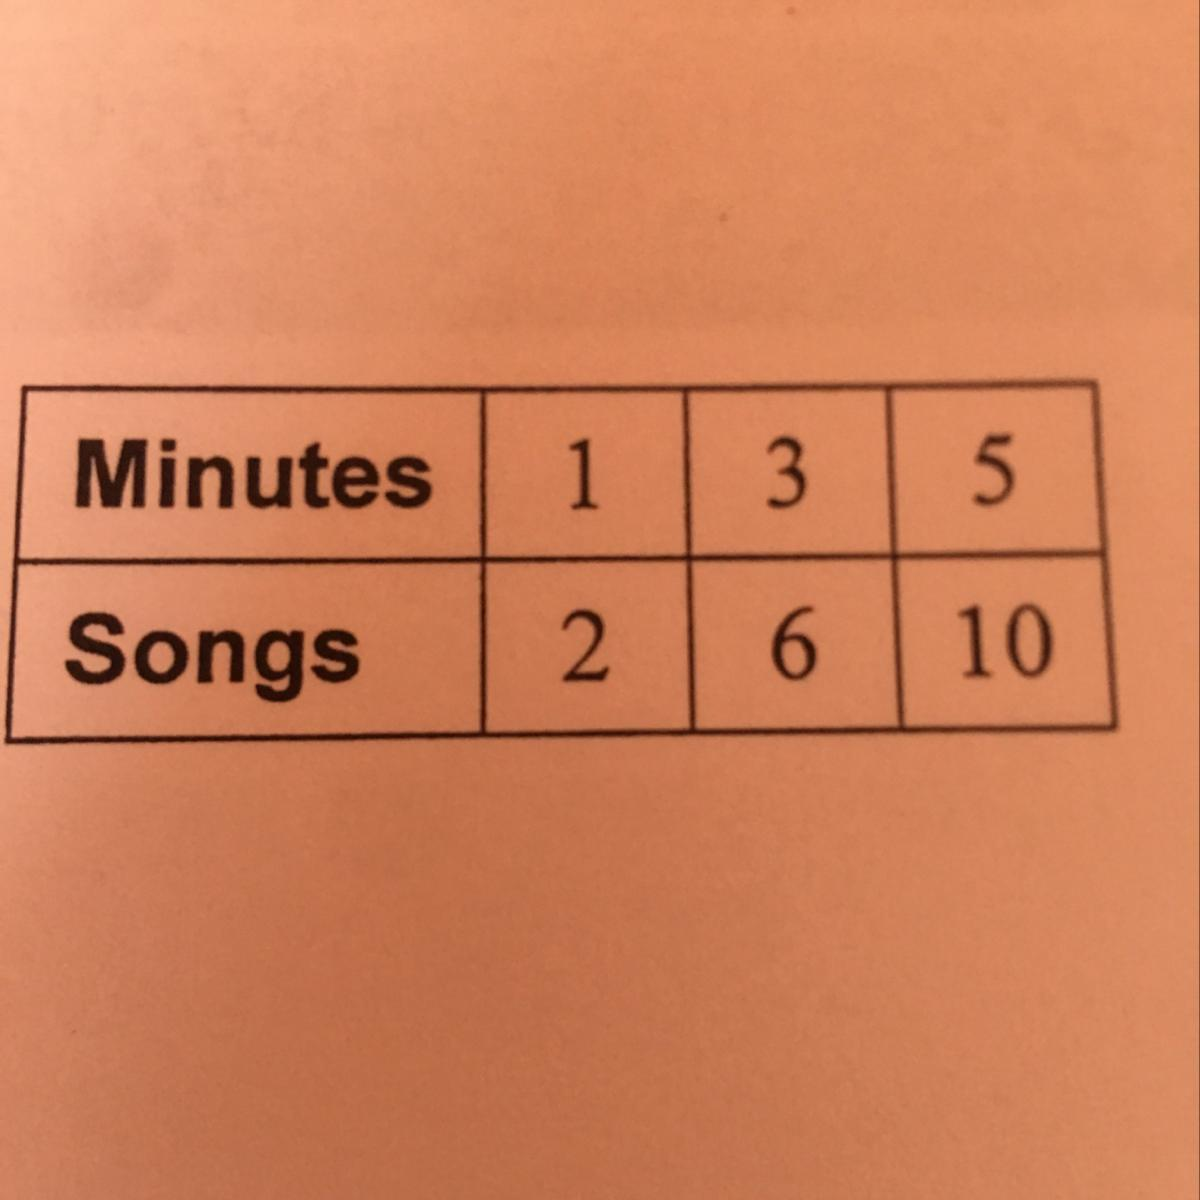 The Table Shows The Time In Minutes M To Download S Songs